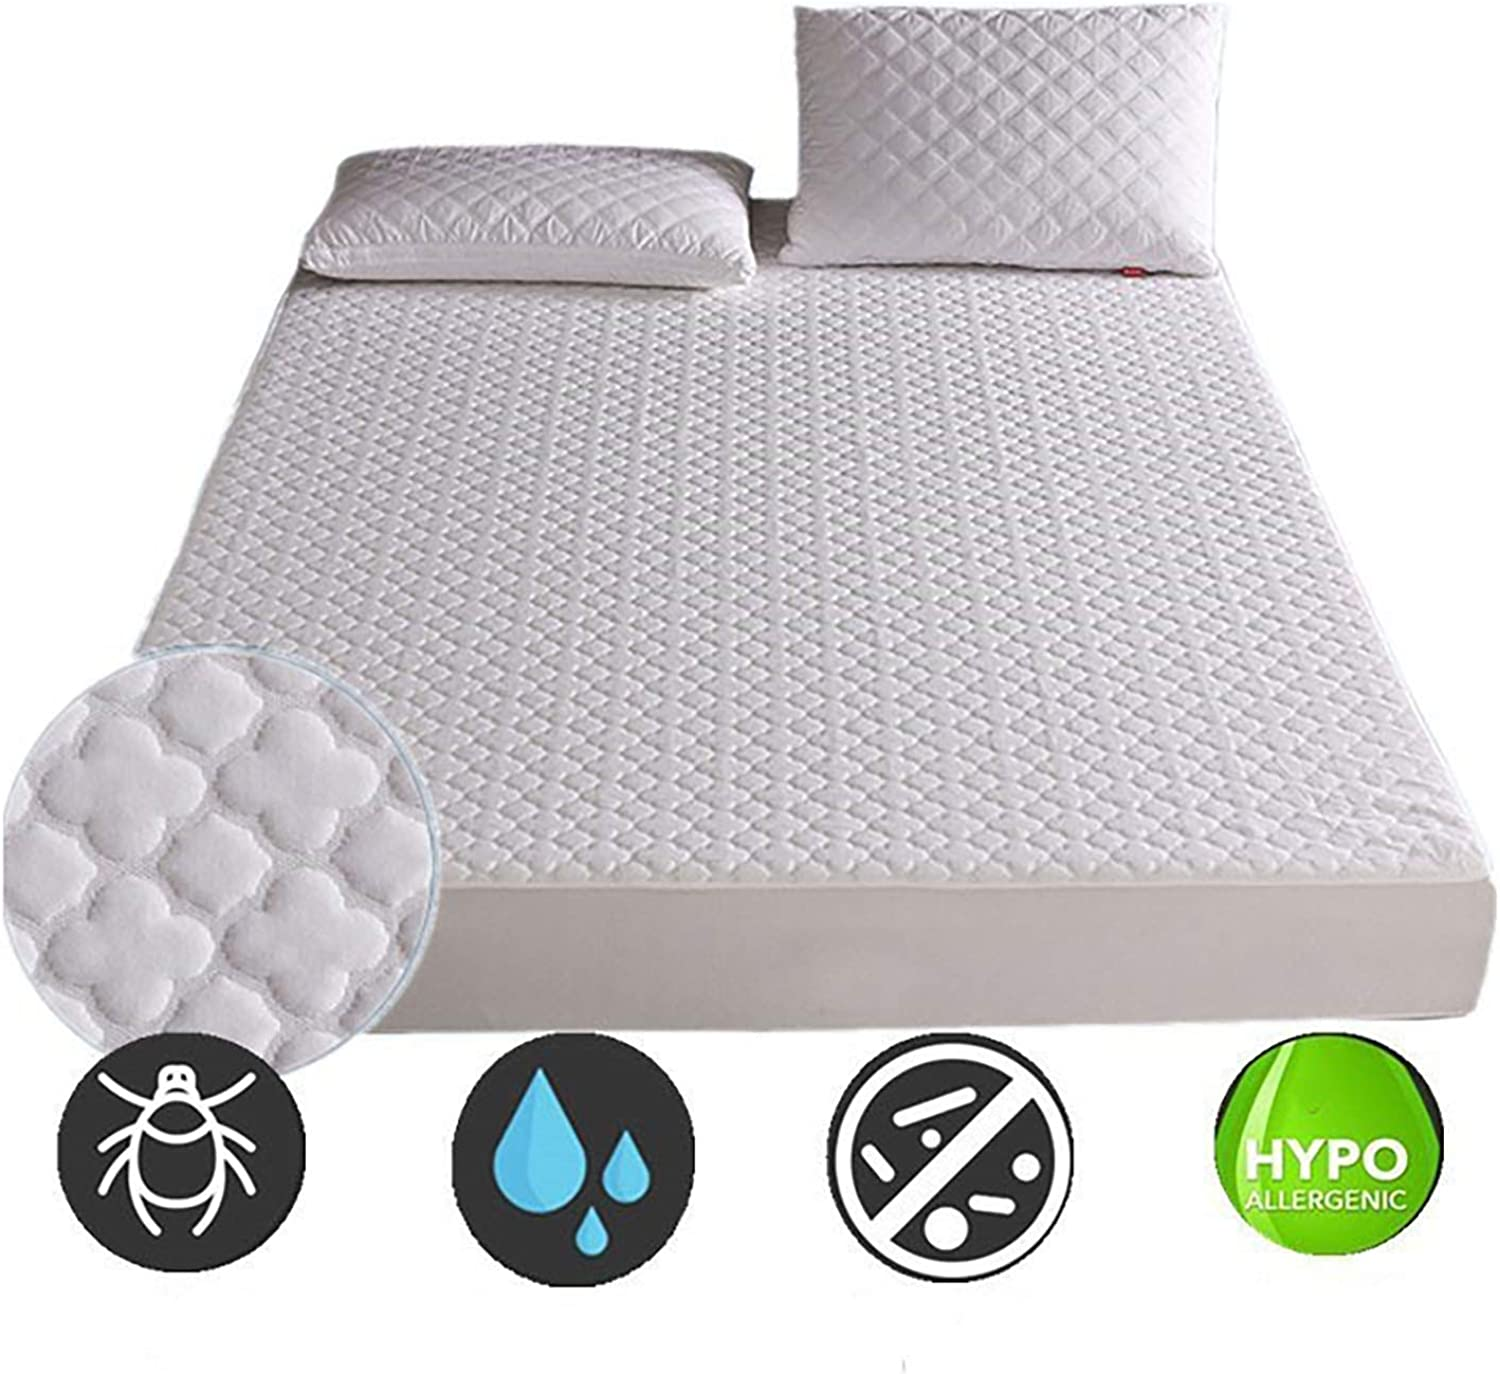 Waterproof Mattress Cover Thick Embossed Mattress Cover (72-200Cm) Thick Waterproof Mattress Mattress Cover,100X200cm